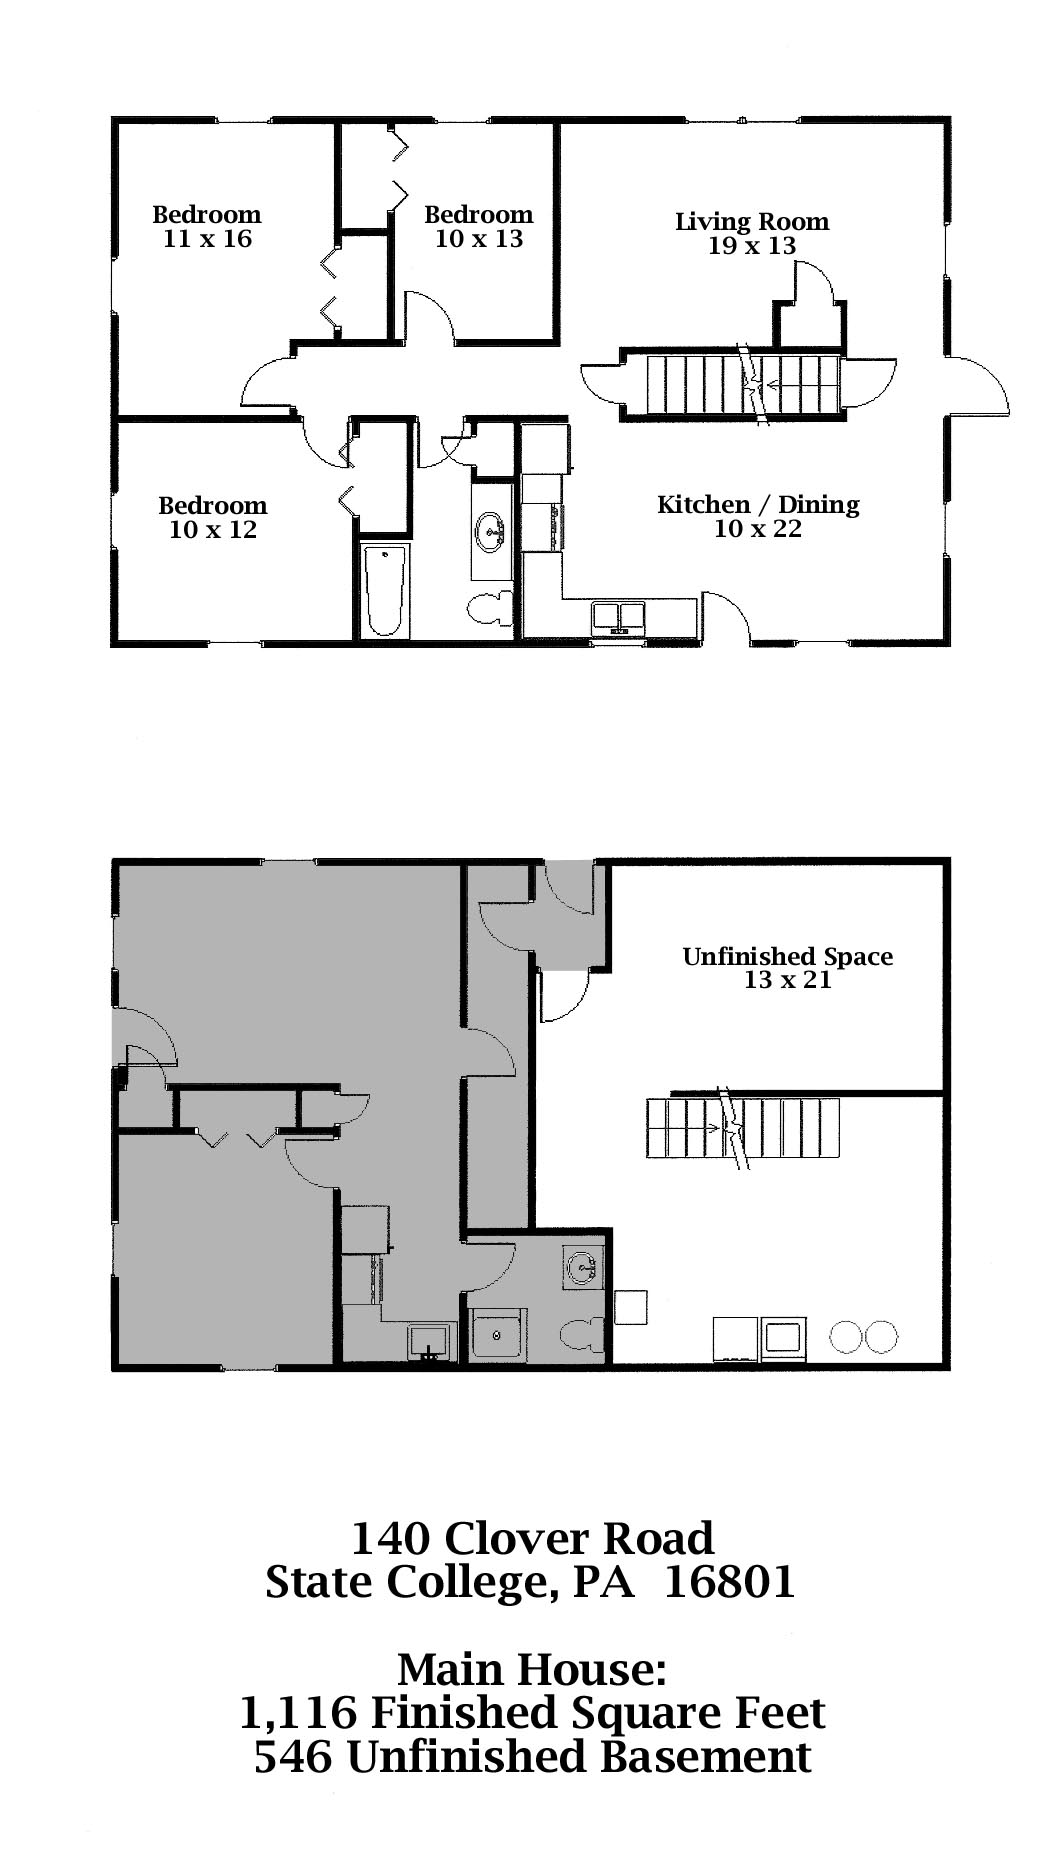 Floor plan of the 3 bedroom apartment for rent at 140 Clover Road in State College, PA